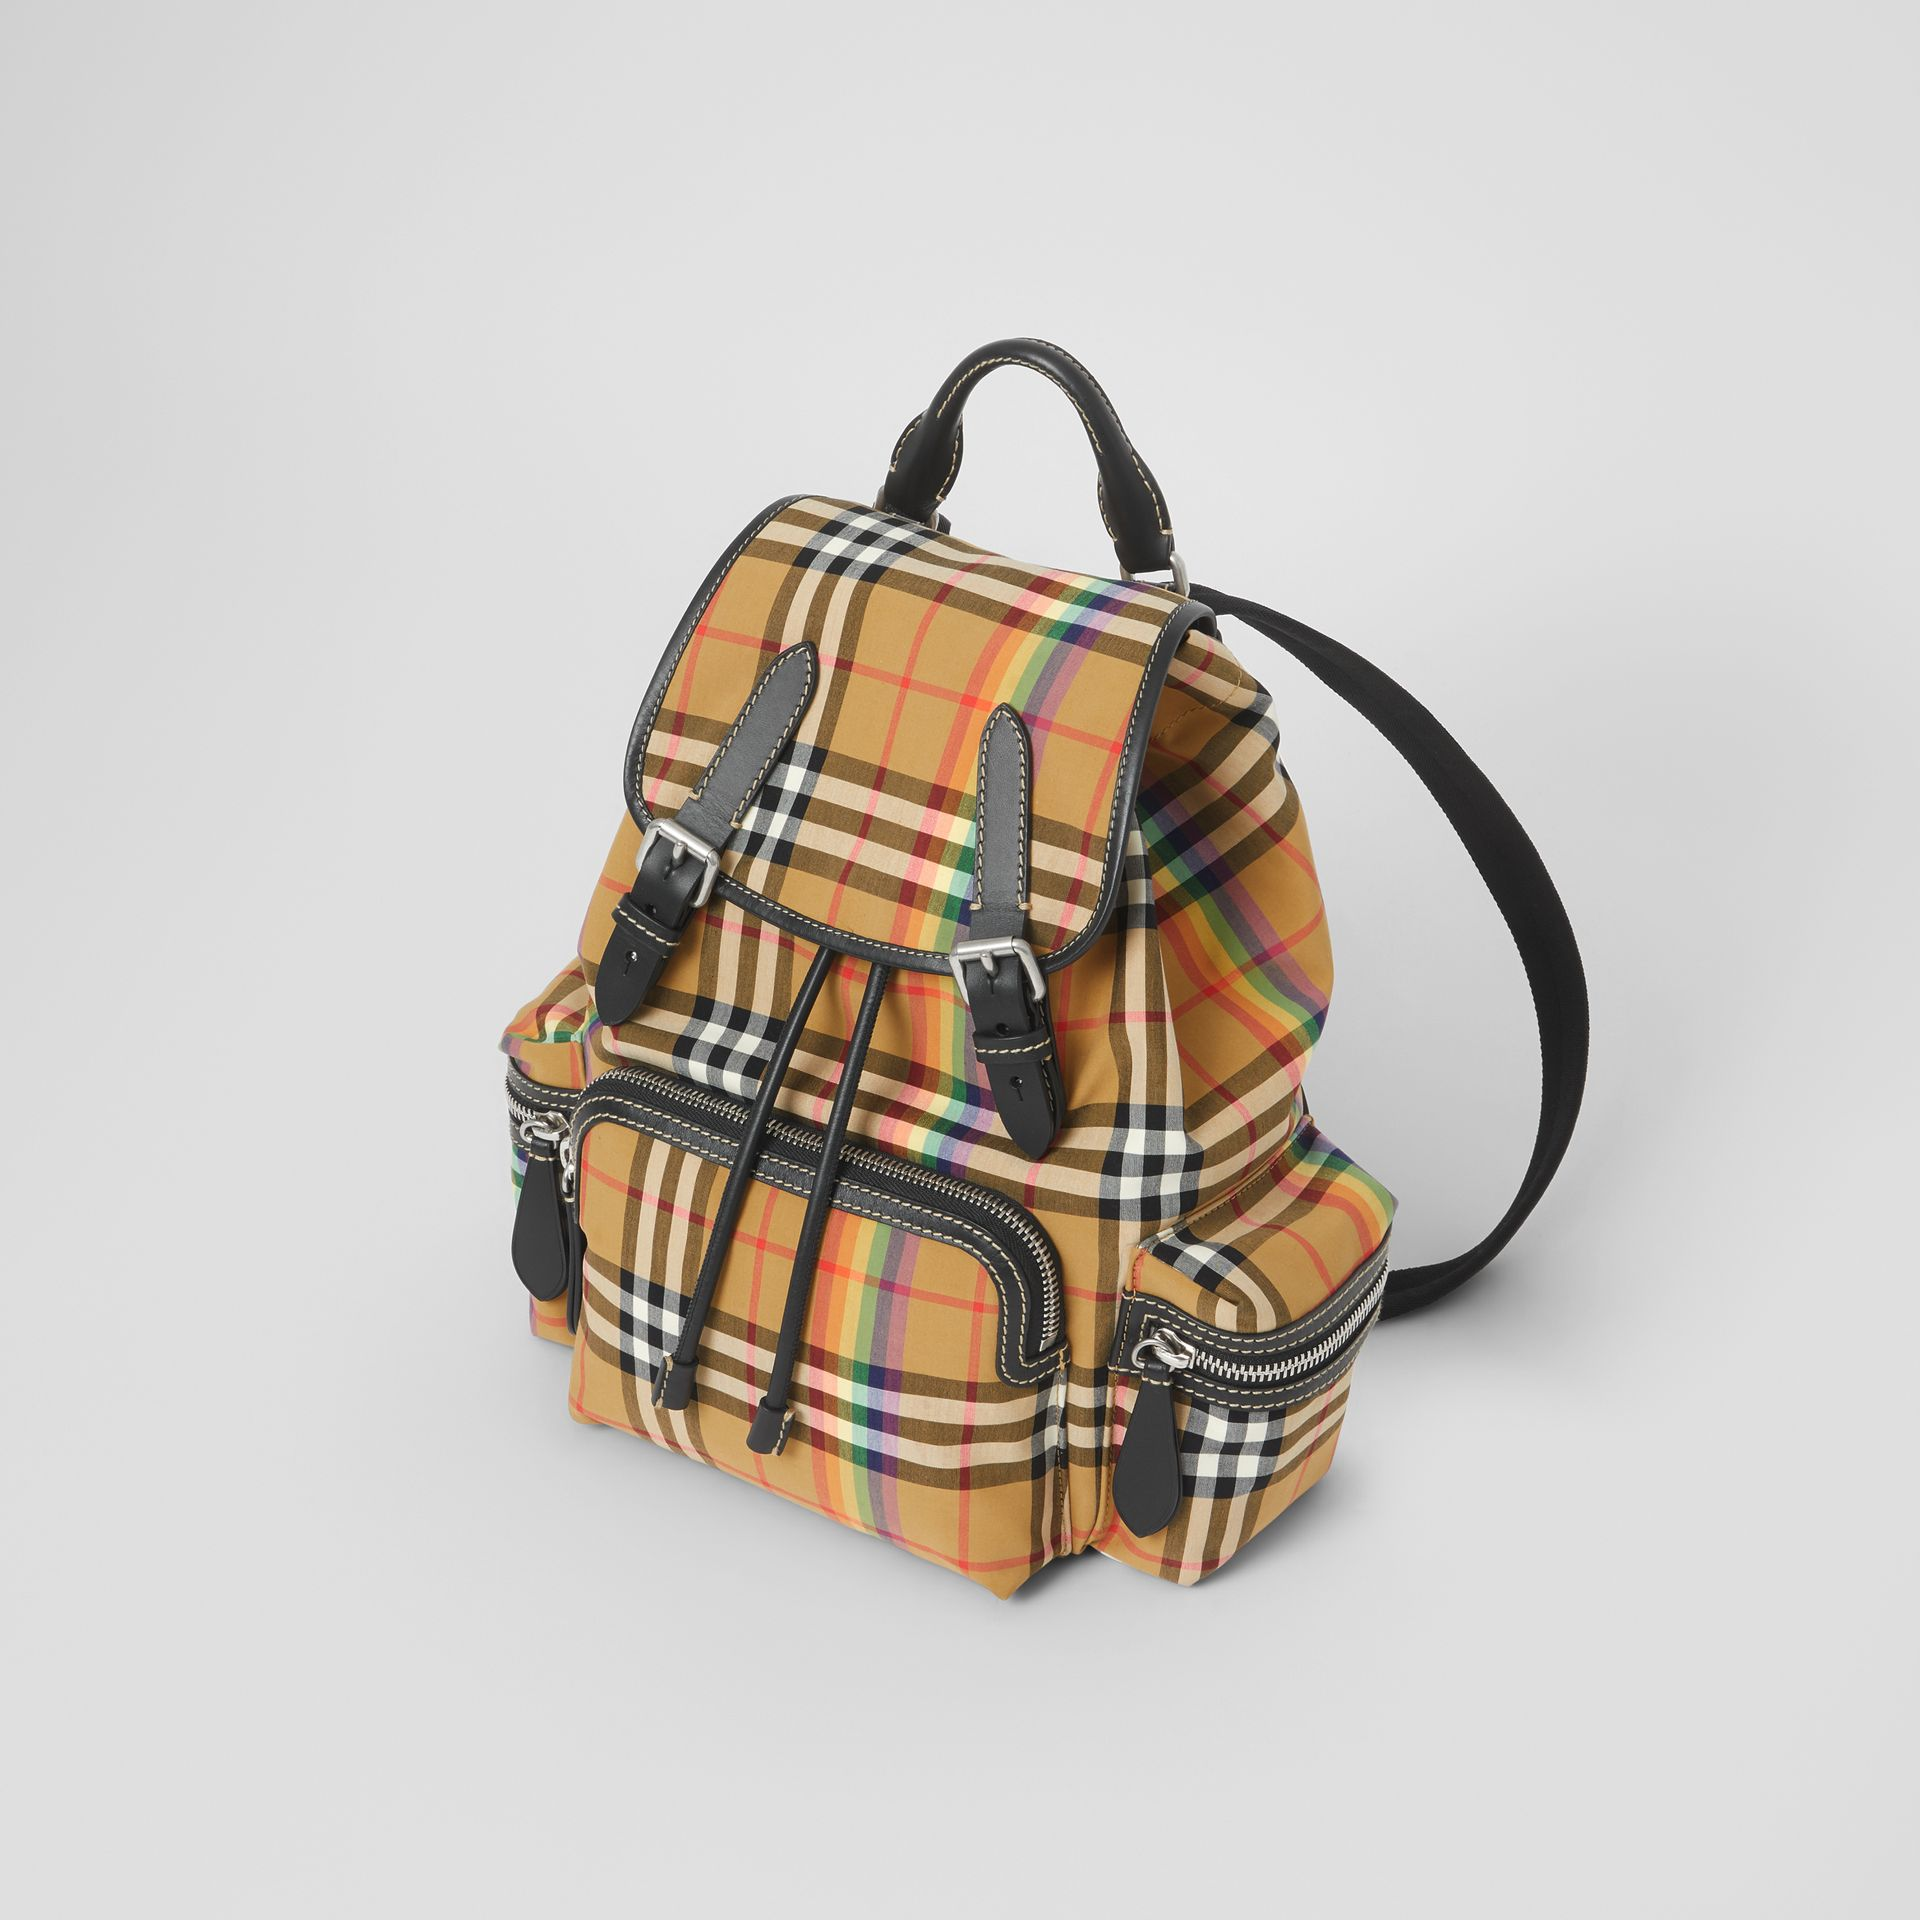 Sac The Rucksack moyen à motif Rainbow Vintage check (Jaune Antique) - Femme | Burberry - photo de la galerie 4